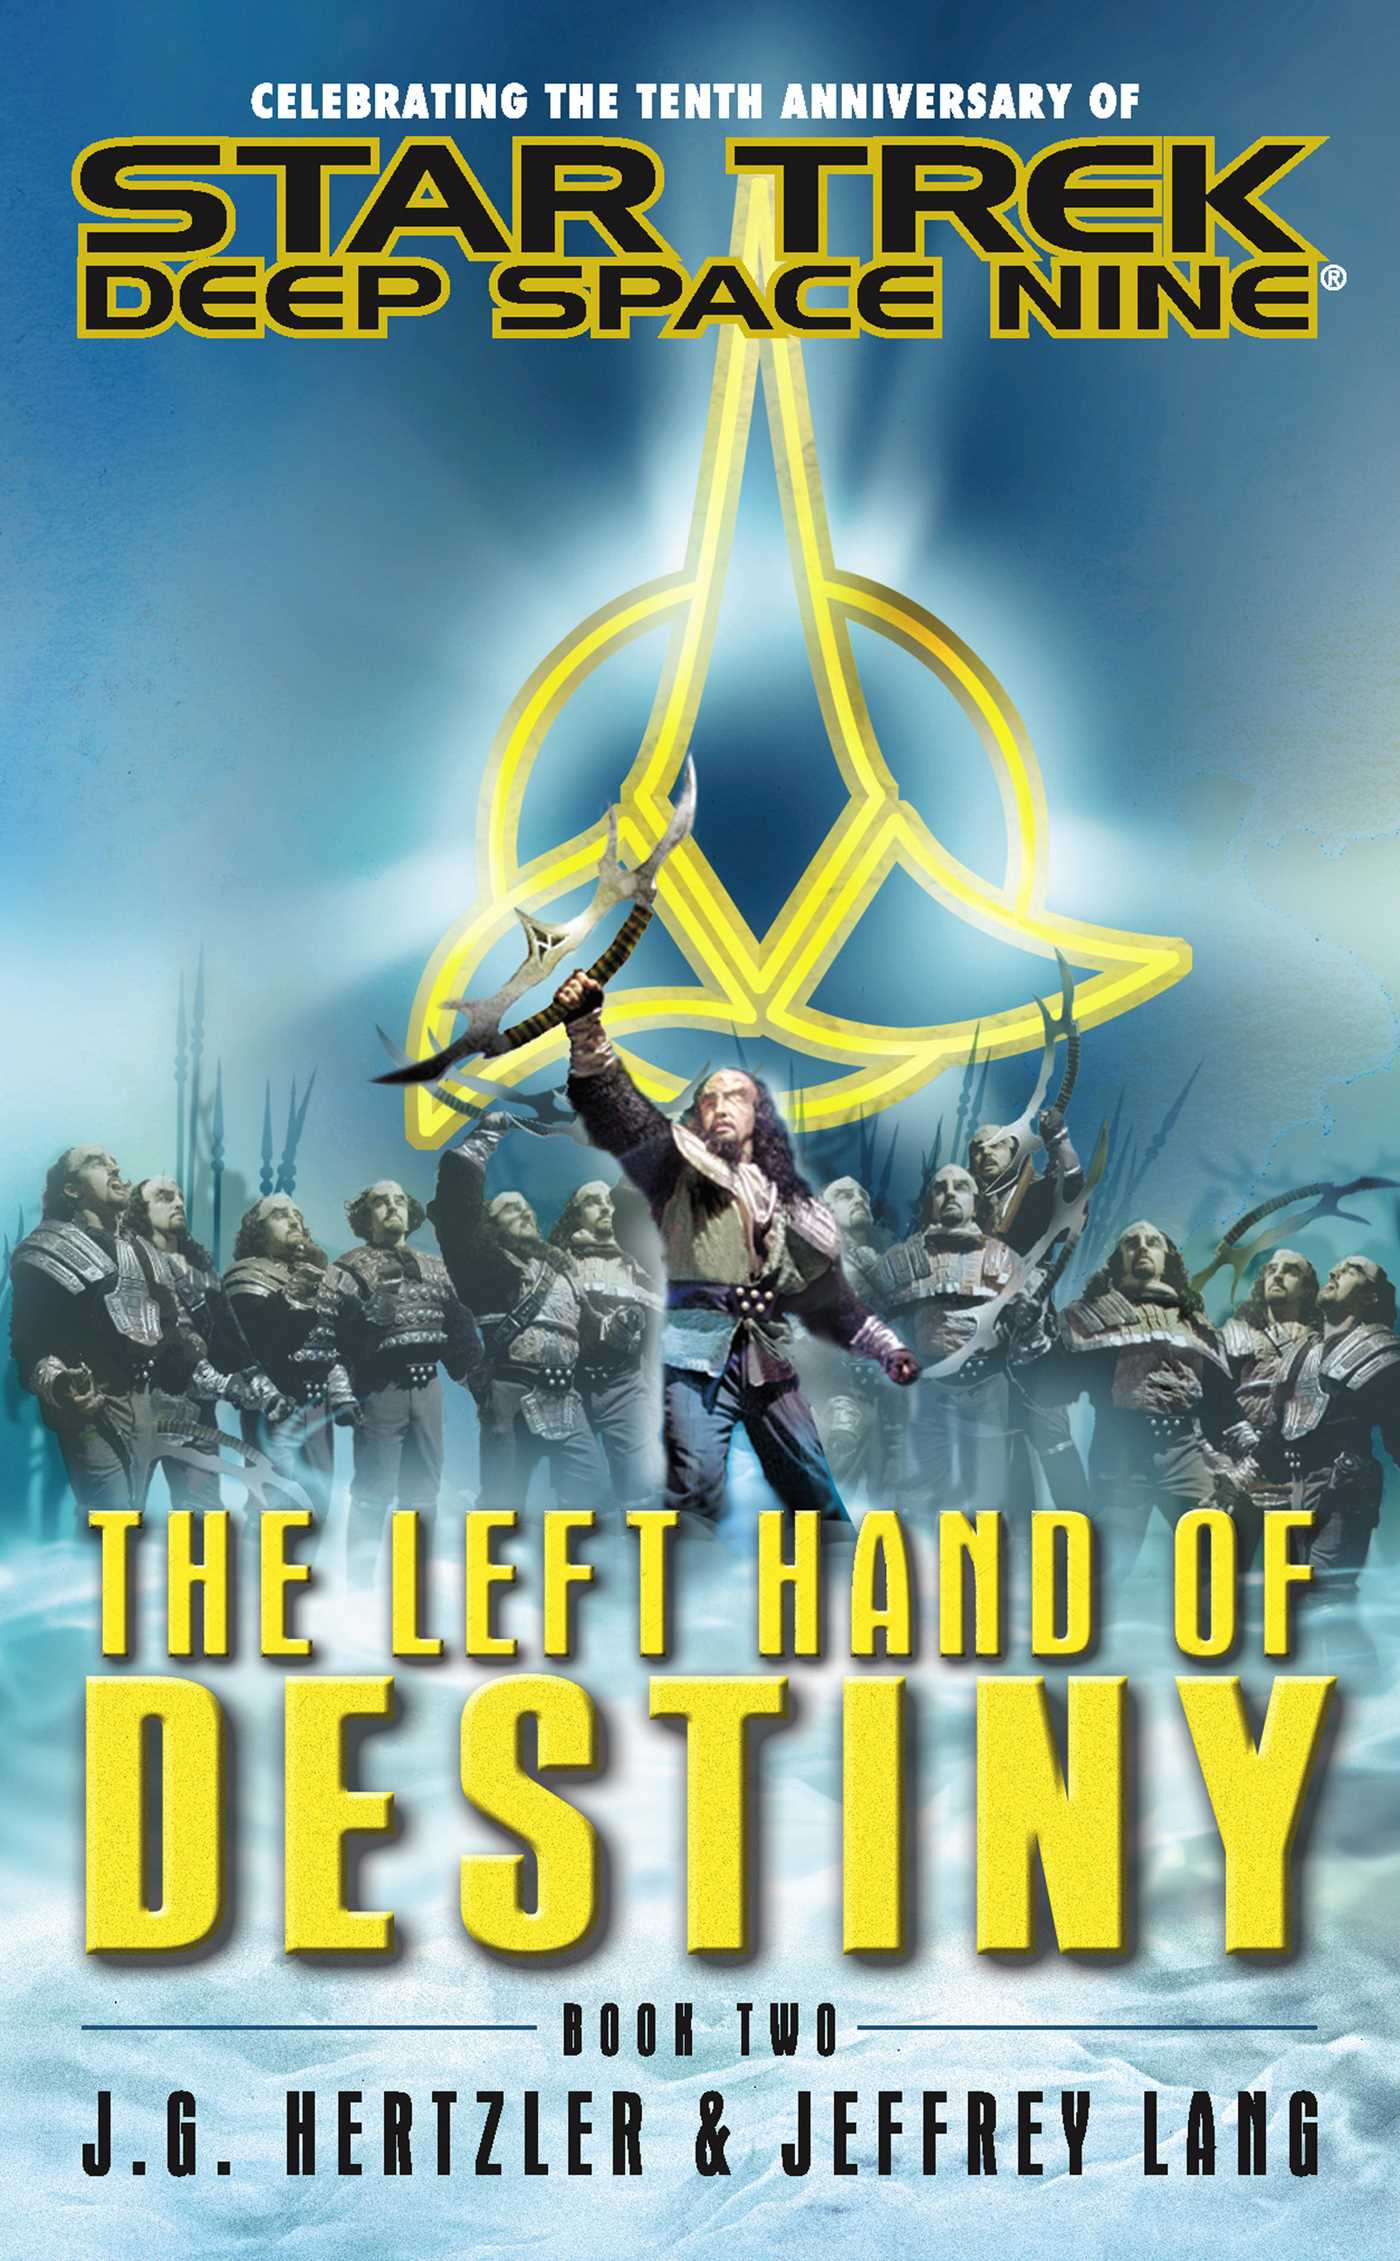 The left hand of destiny book two 9781471106583 hr